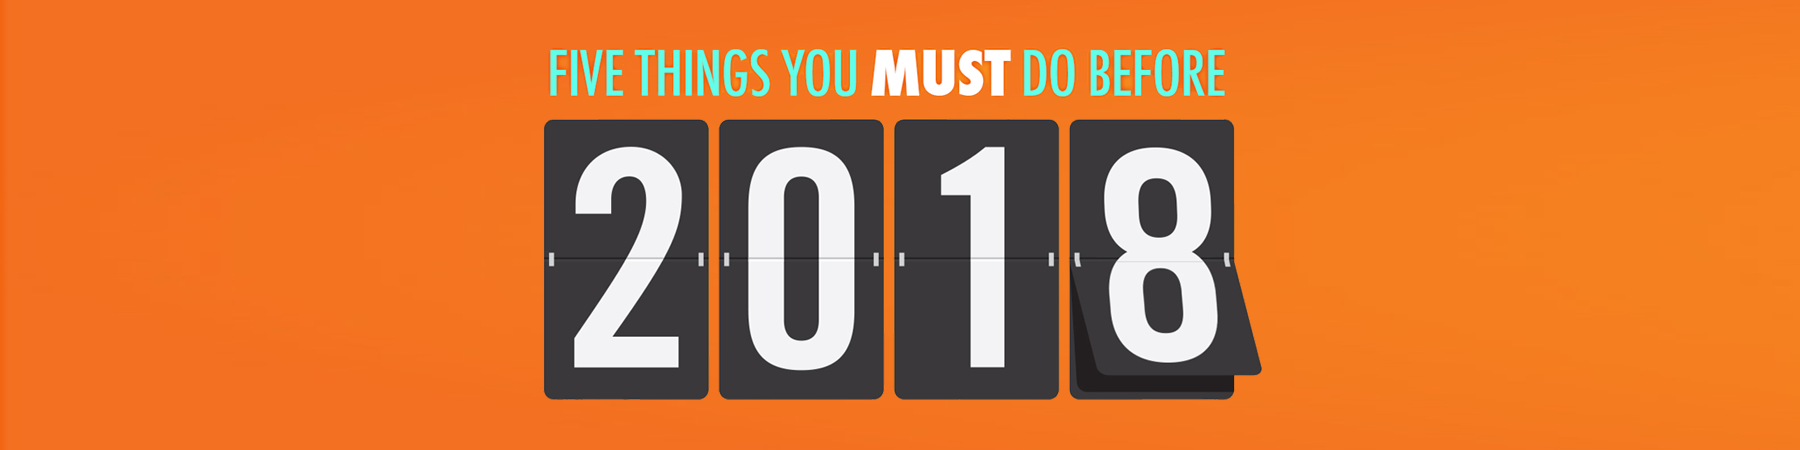 5 Things To Do Before 2018: FIVE THINGS YOU MUST DO BEFORE 2018